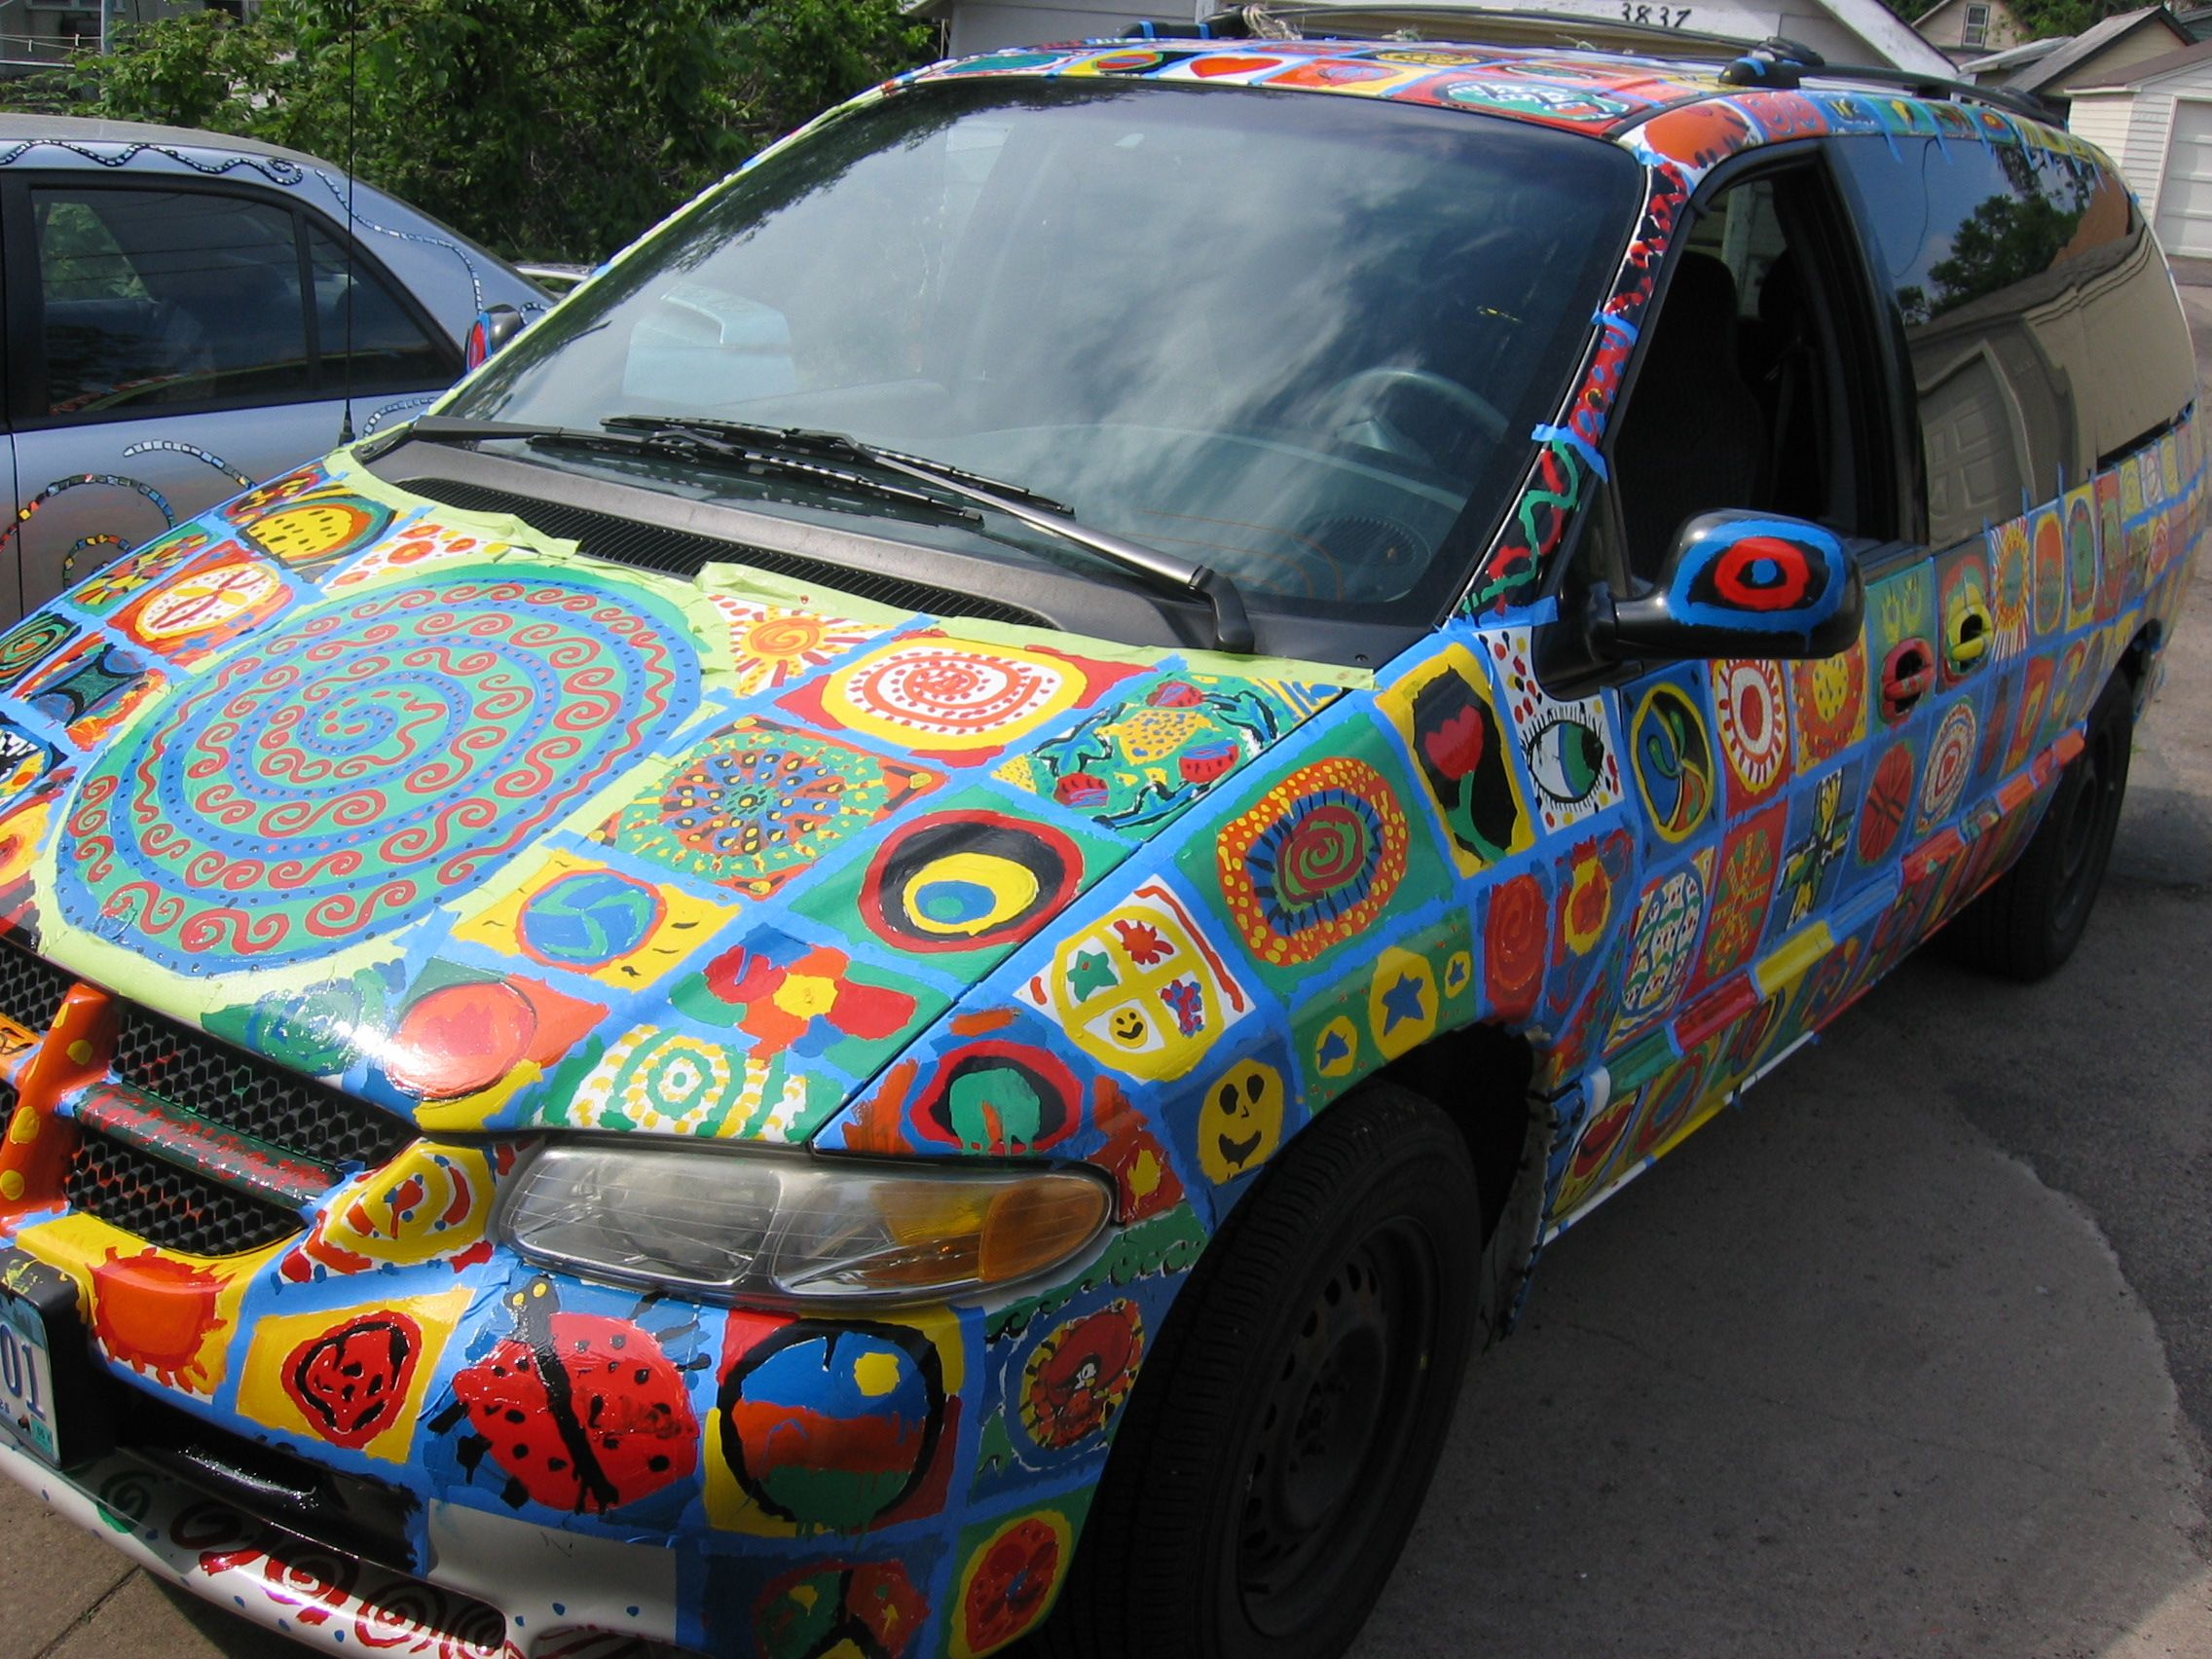 Mandala Paint Job Find That Minivan In A Parking Lot